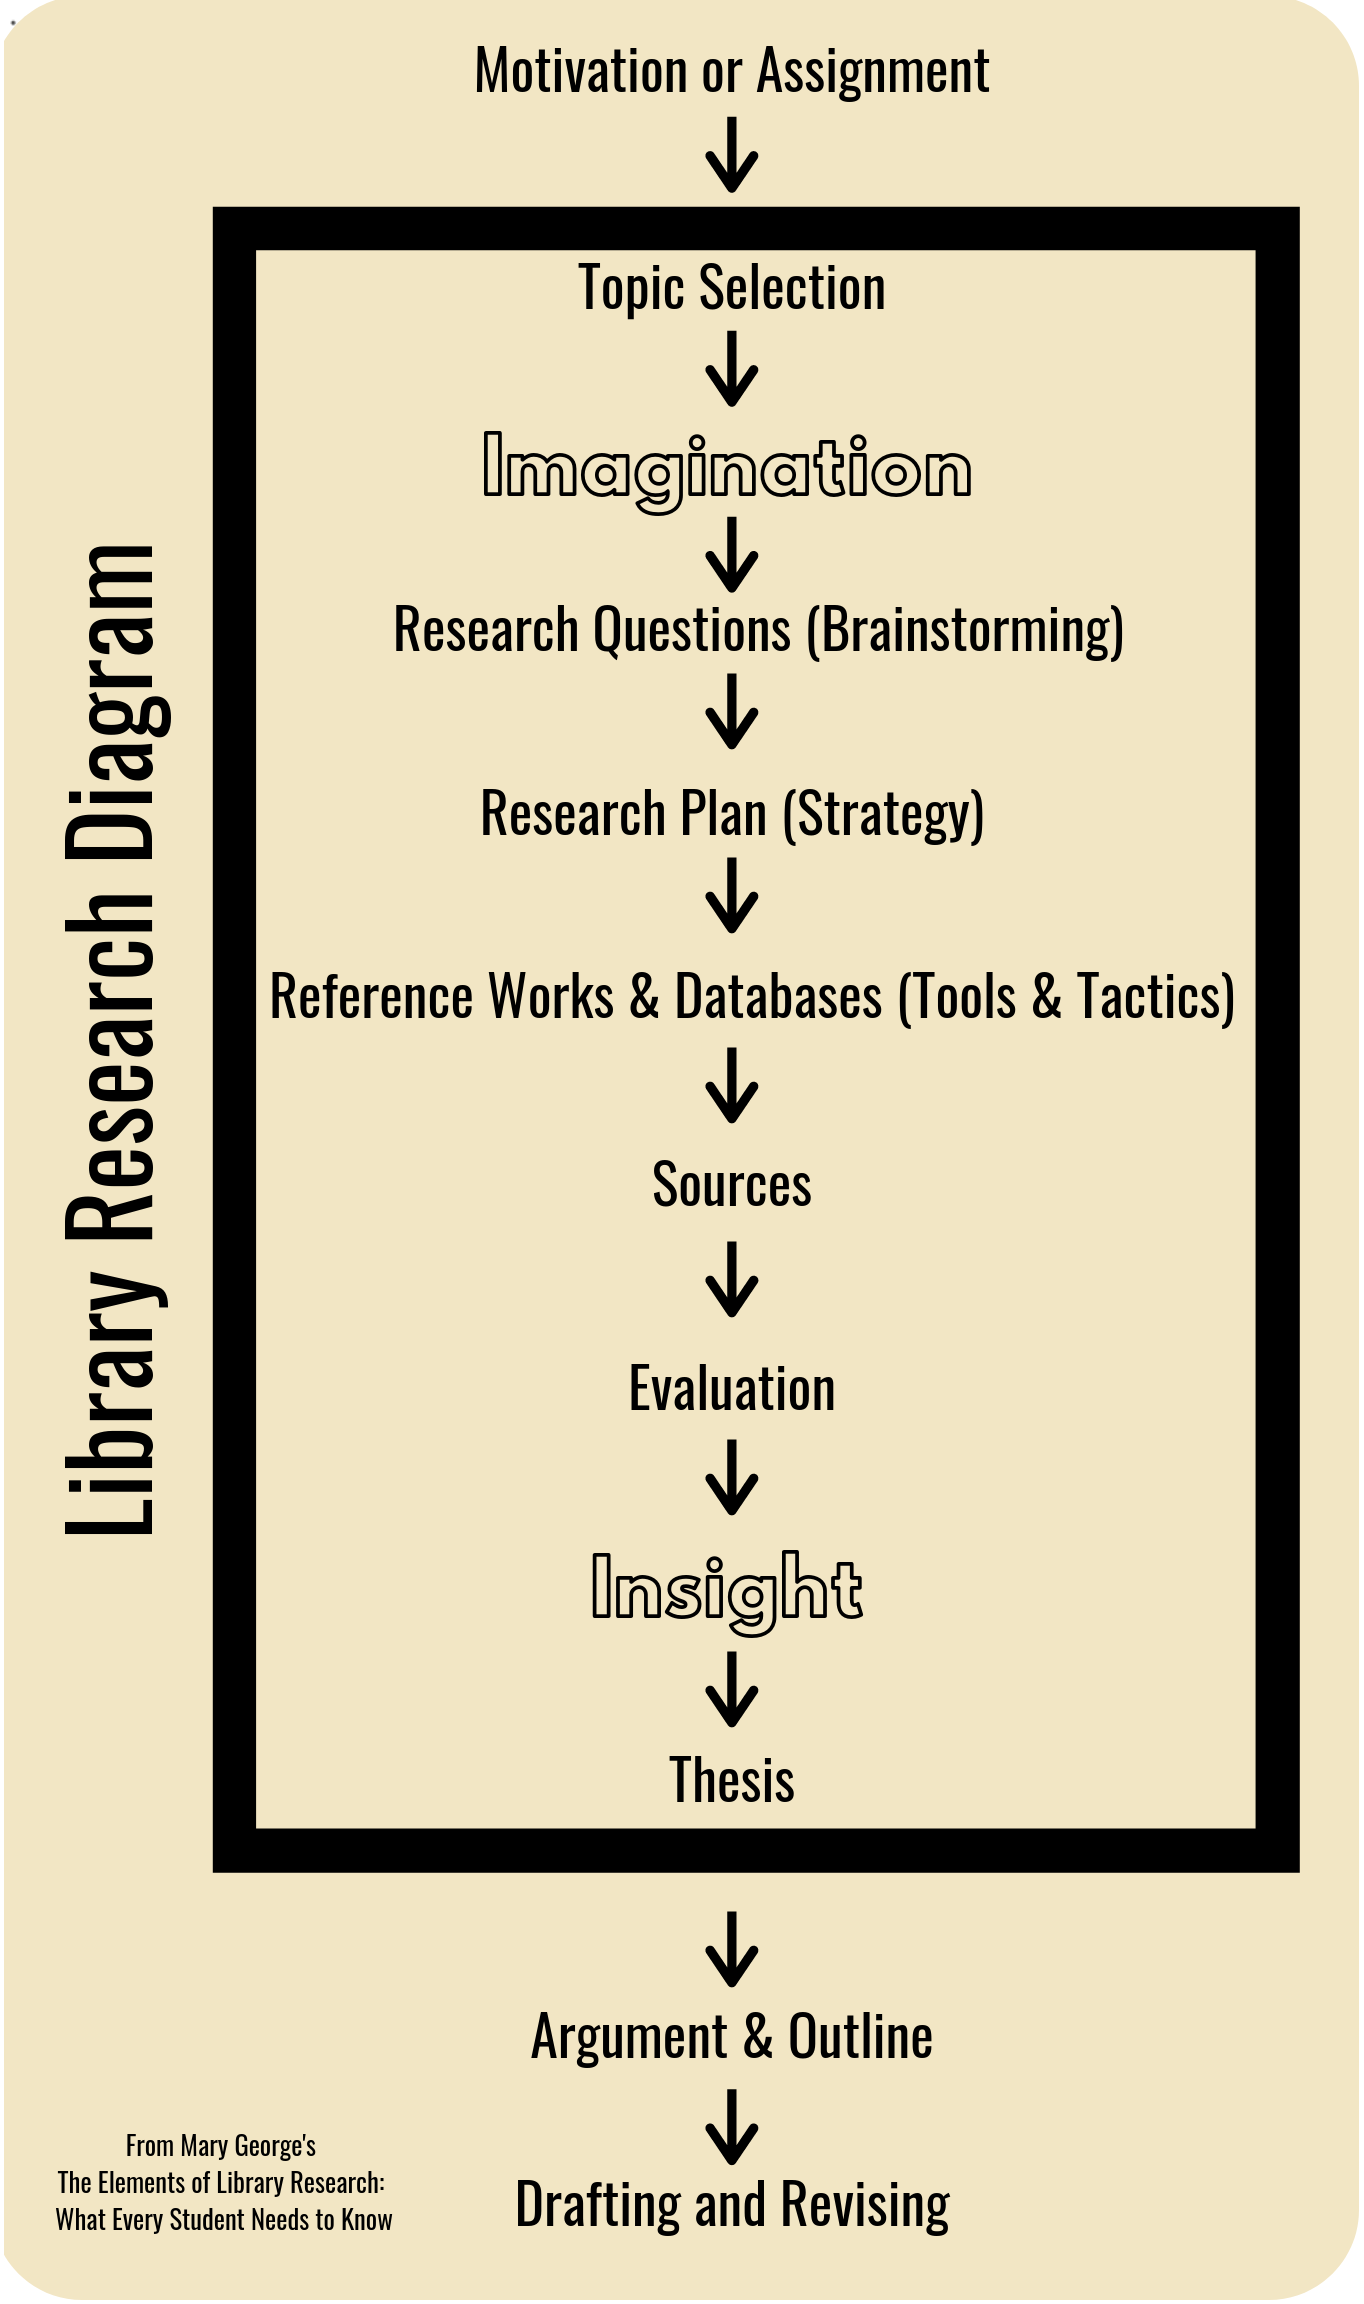 Library research diagram: motivation or assignment, topic selection, imagination, research questions (brainstorming), research plan (strategy), reference works & databases (tools & tactics), sources, evaluation, insight, thesis, argument & outline, drafting& revising